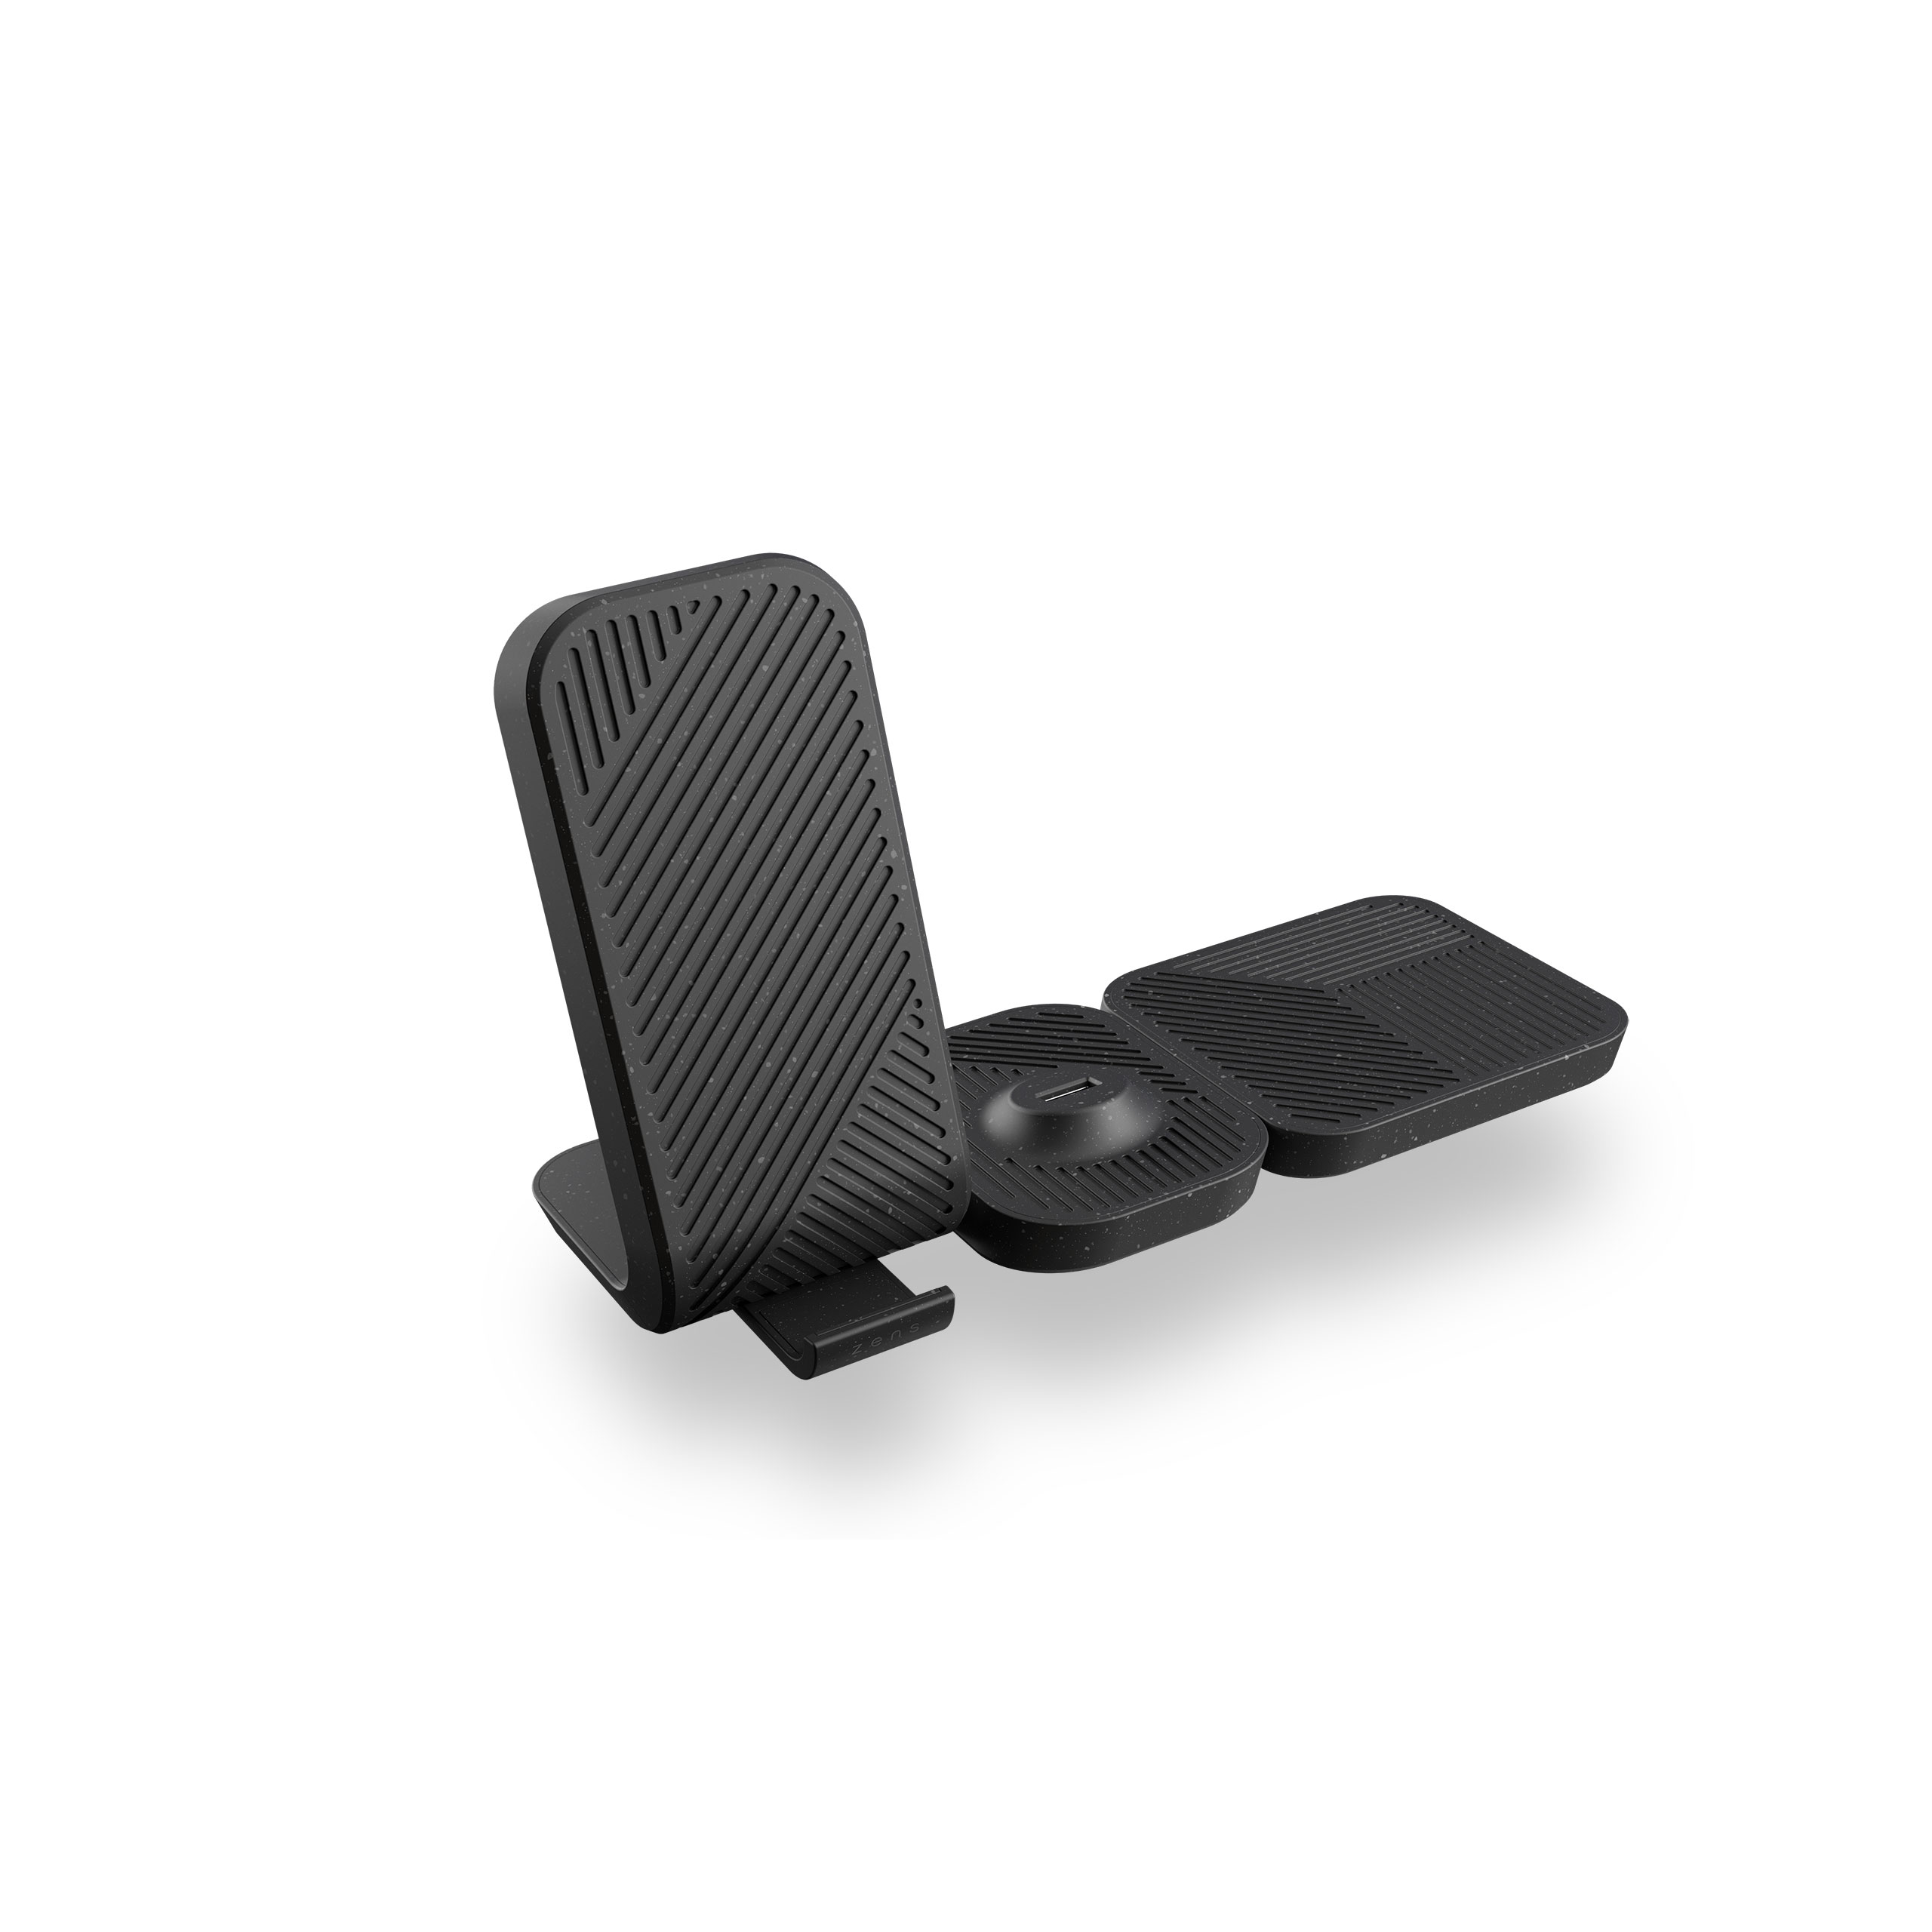 ZEMSC2P Zens Modular Stand Wireless Charger With Extensions